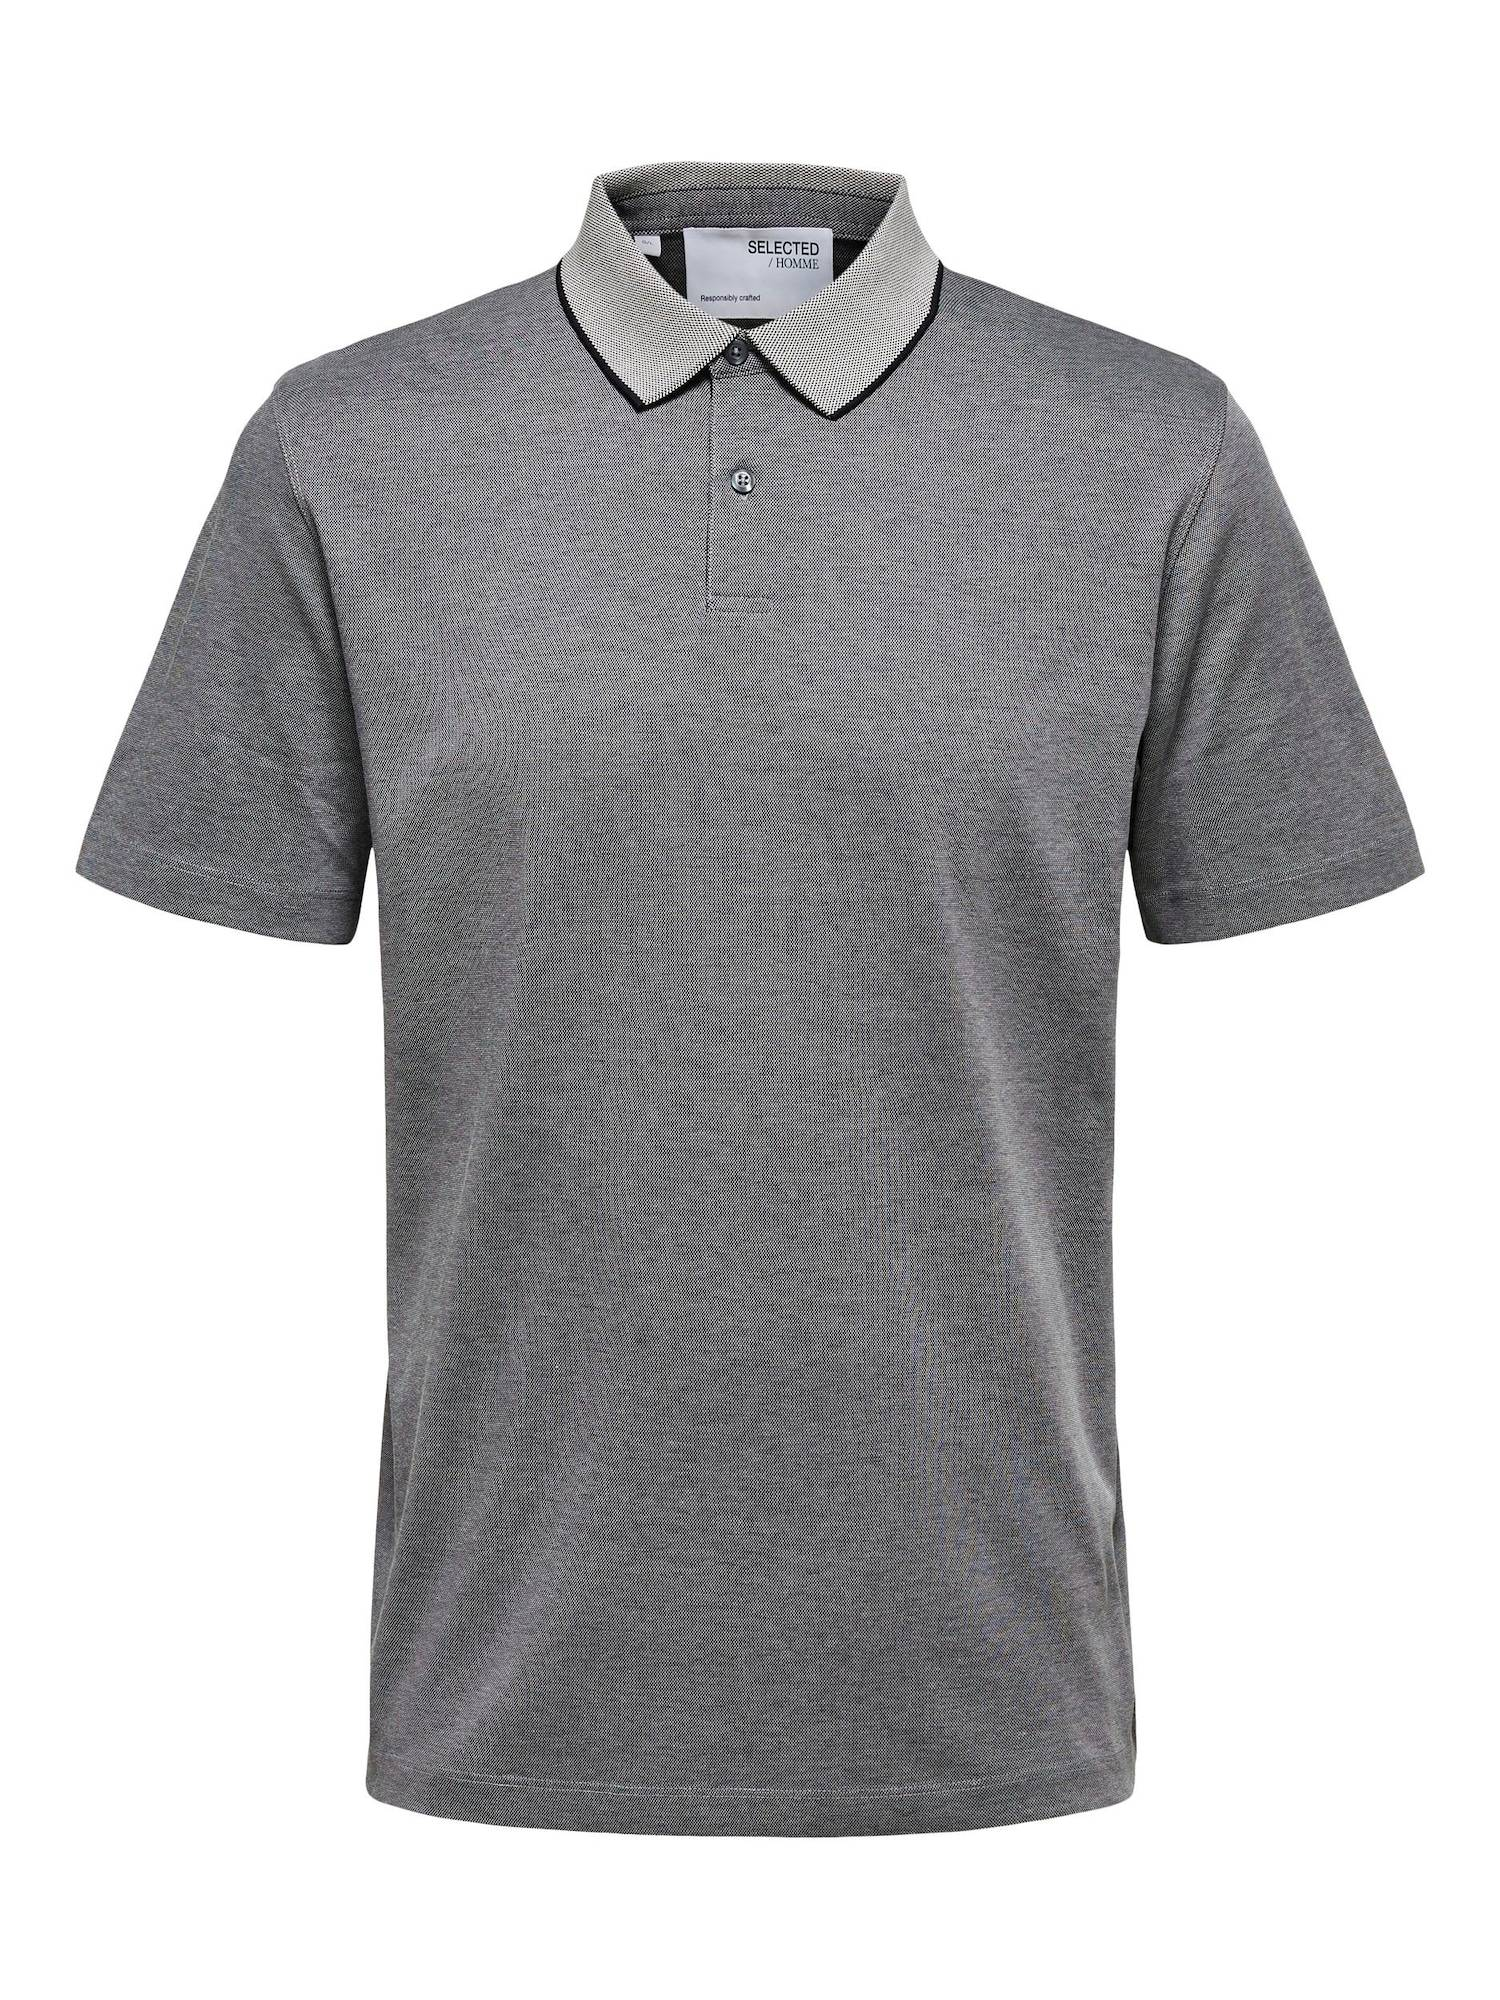 SELECTED HOMME T-Shirt 'Leroy'  - Gris - Taille: L - male